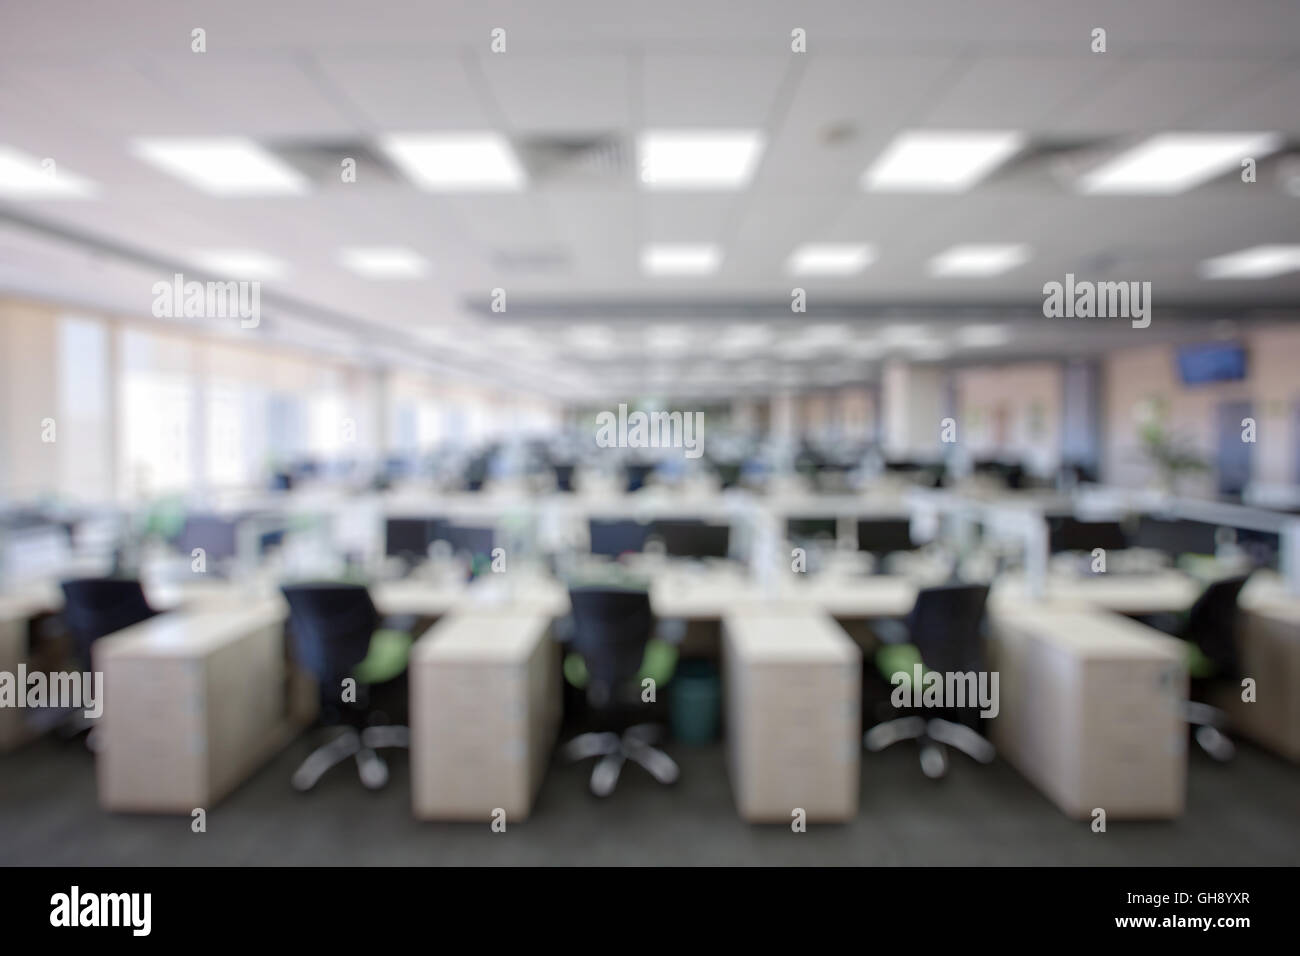 office backdrop. Blurry Office Background, Perfect To Use For Backdrop In Advertisements Or Other Designs - Stock A